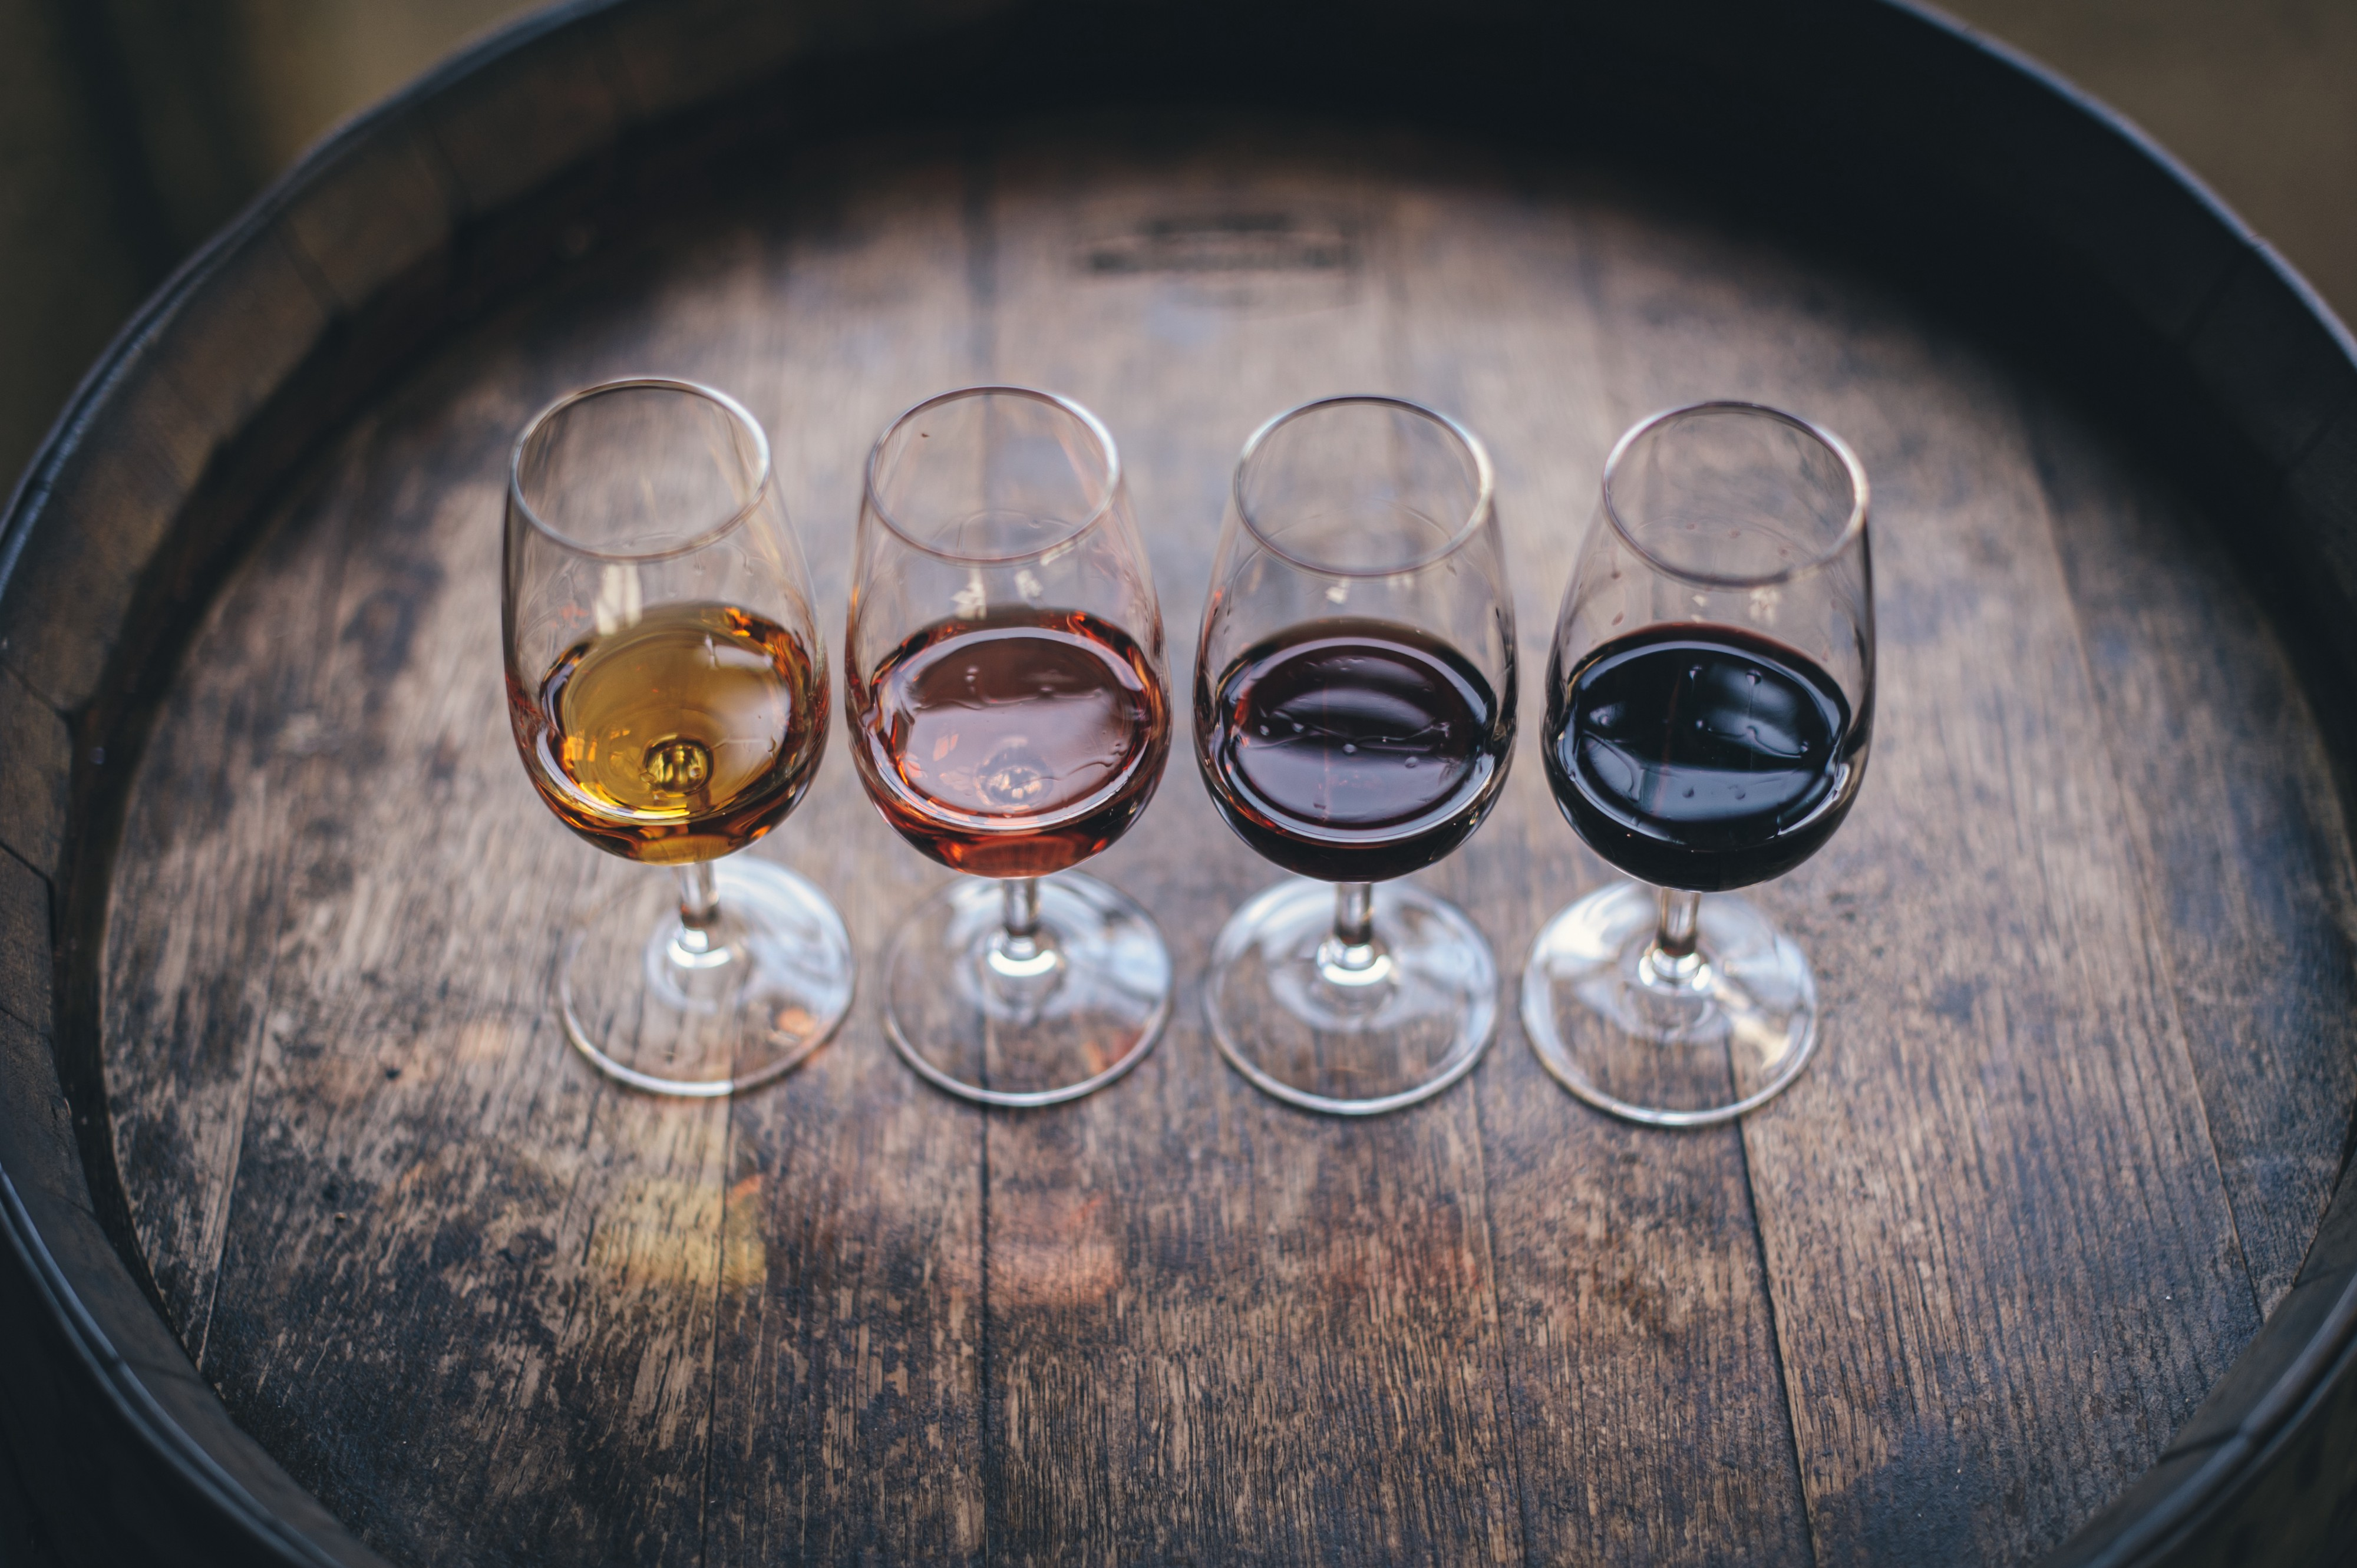 A wine tasting flight of colors from yellow to red sitting on top of an oak barrel.